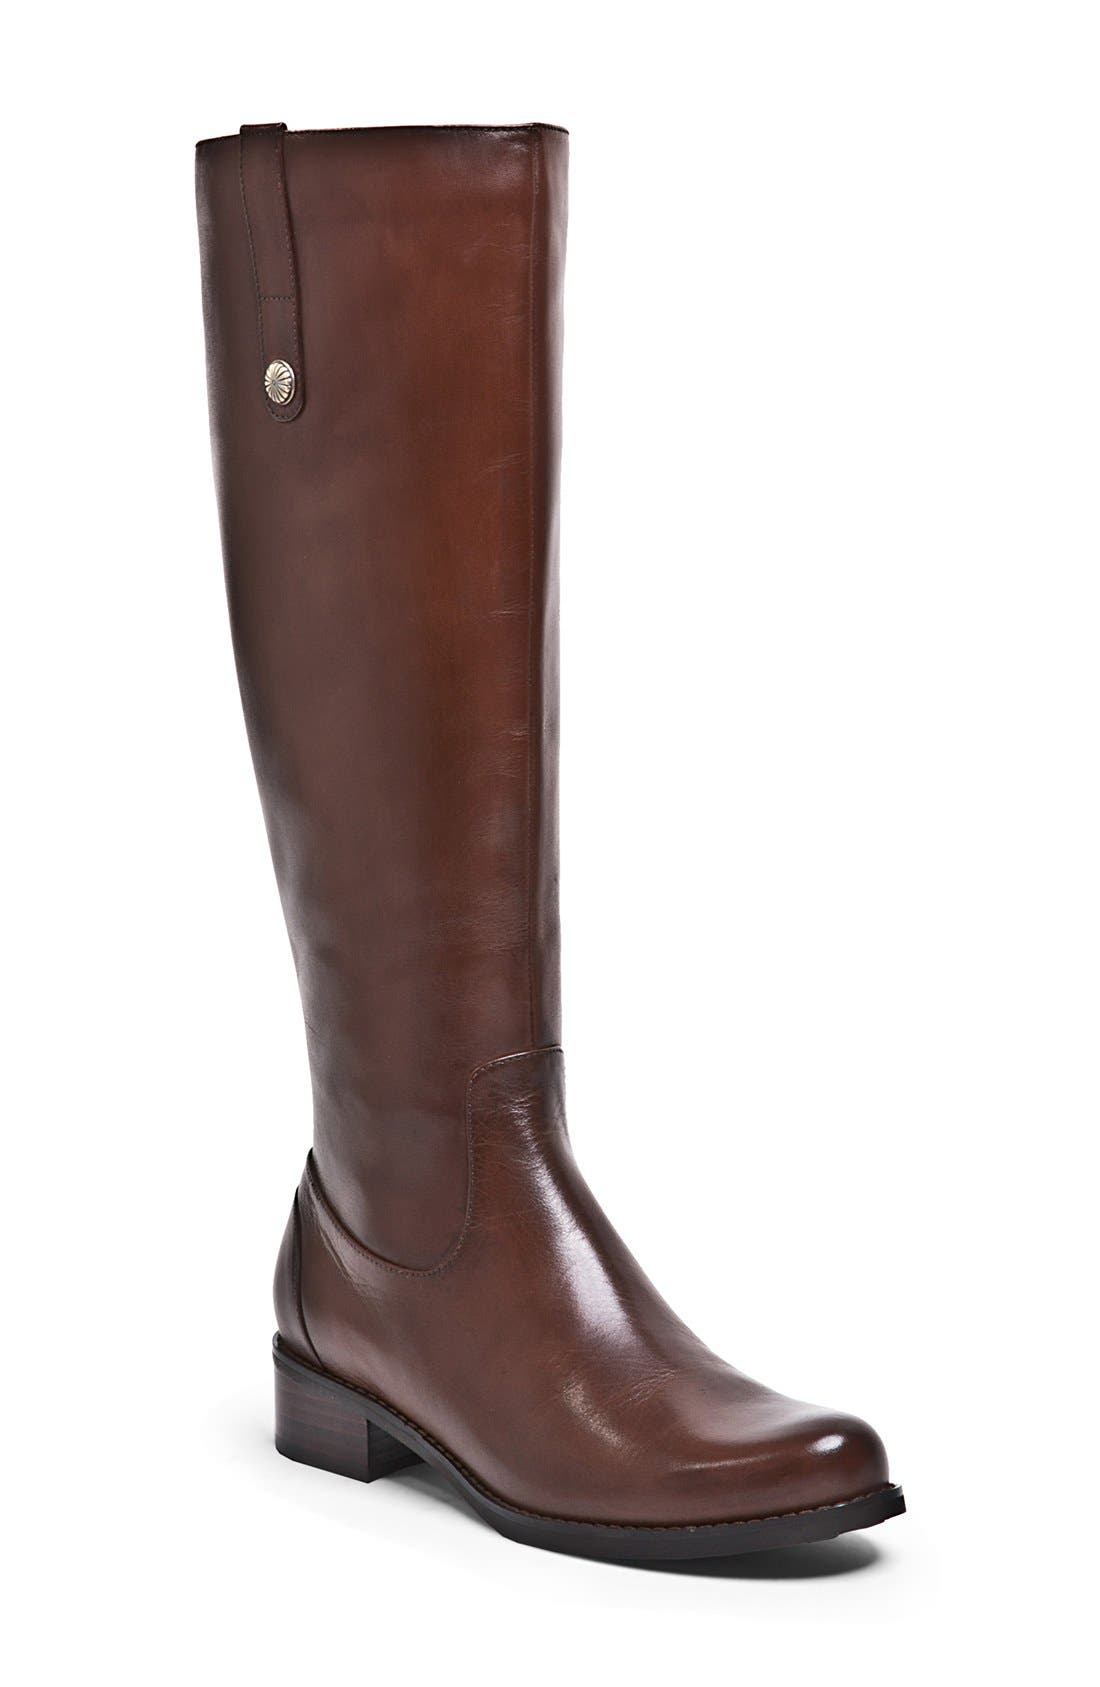 Women's Brown Riding Boots, Boots for Women | Nordstrom